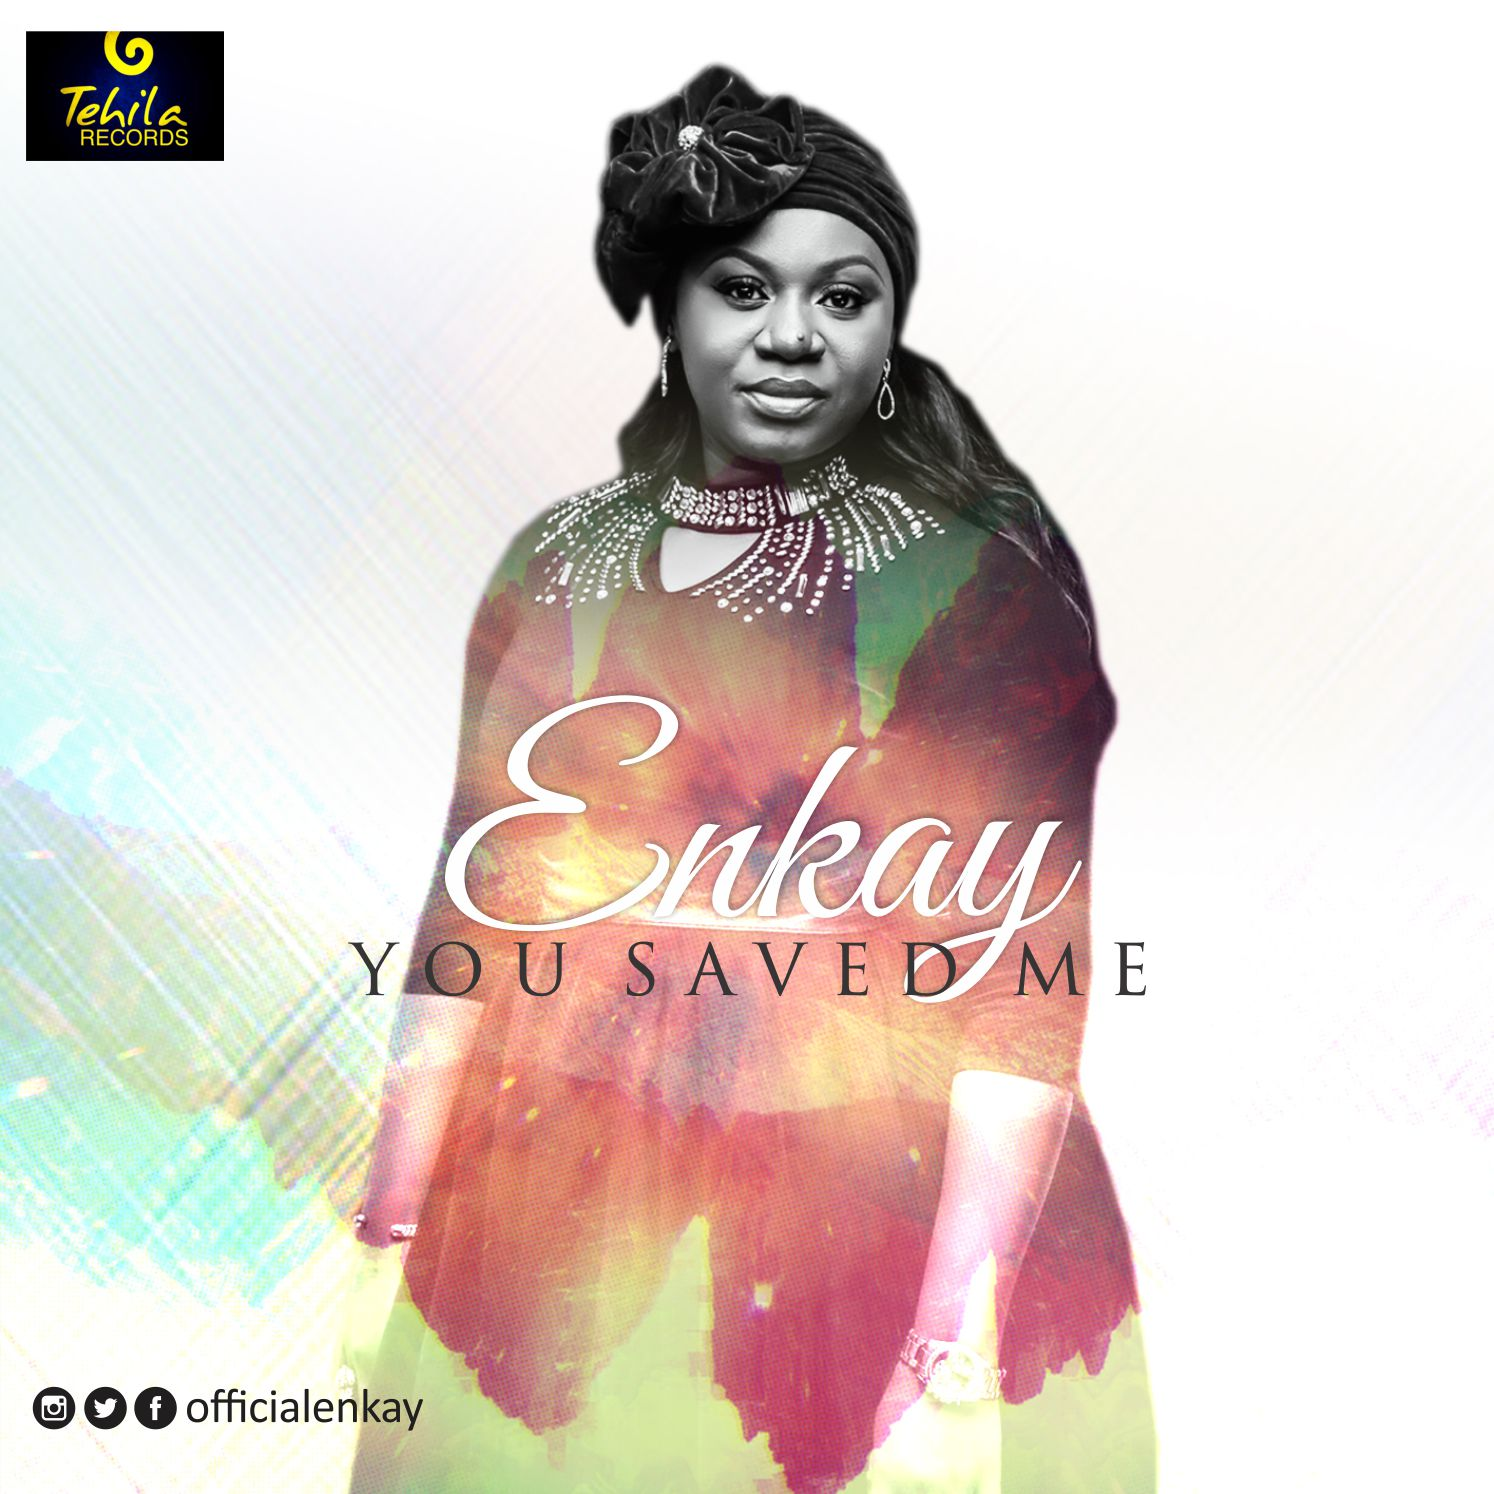 ENKAY RELEASES NEW SINGLE - 'YOU SAVED ME'